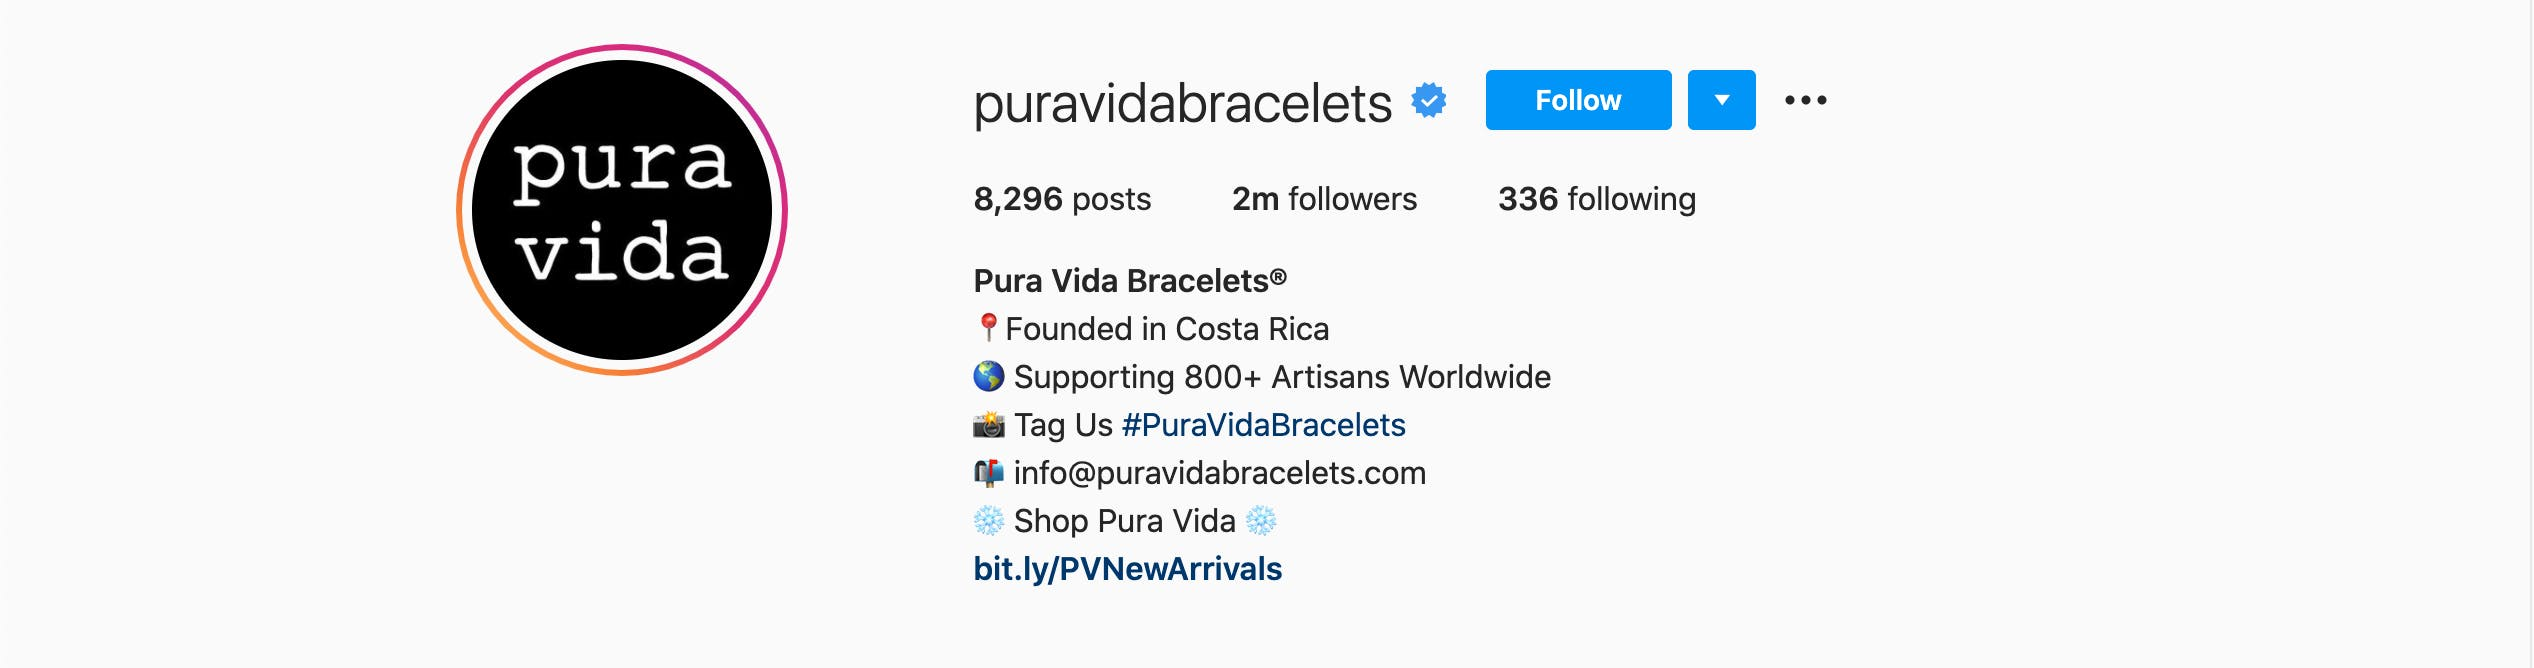 A Step By Step Guide To Crafting An Appealing Instagram Bio puravidabracelets Instagram bio